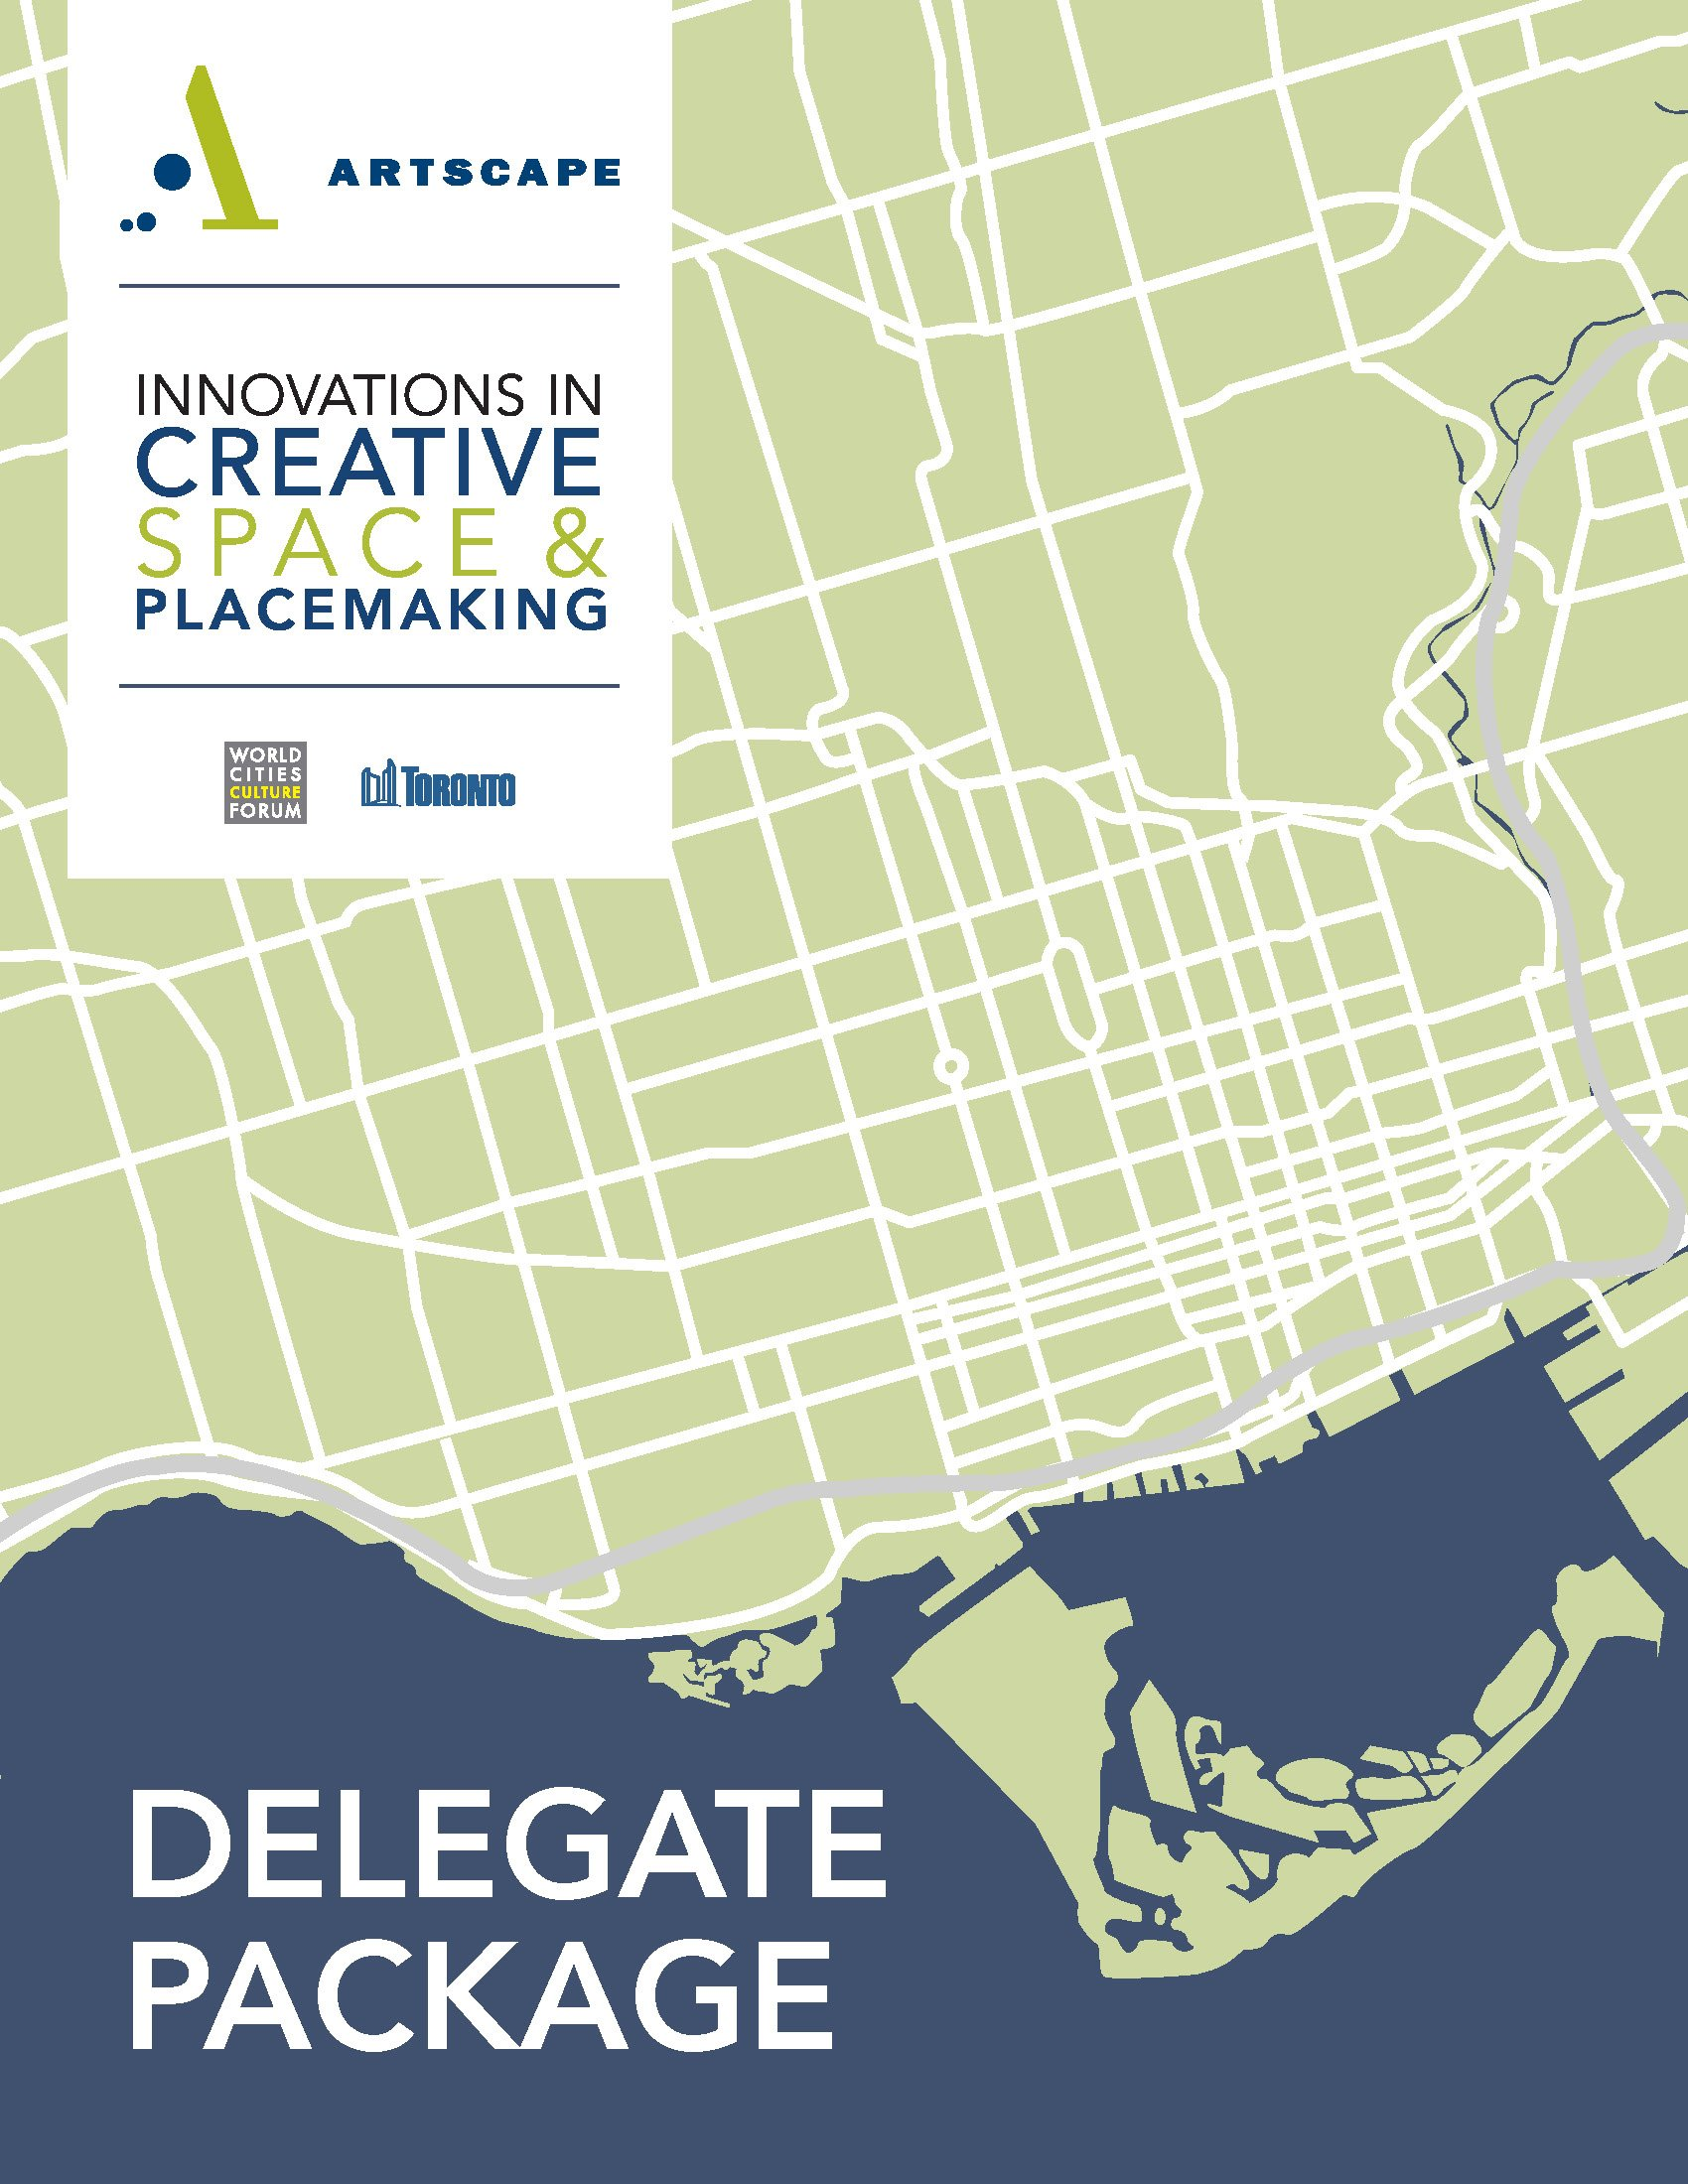 Learn more our speakers, delegates and program - view our Delegate Package in PDF